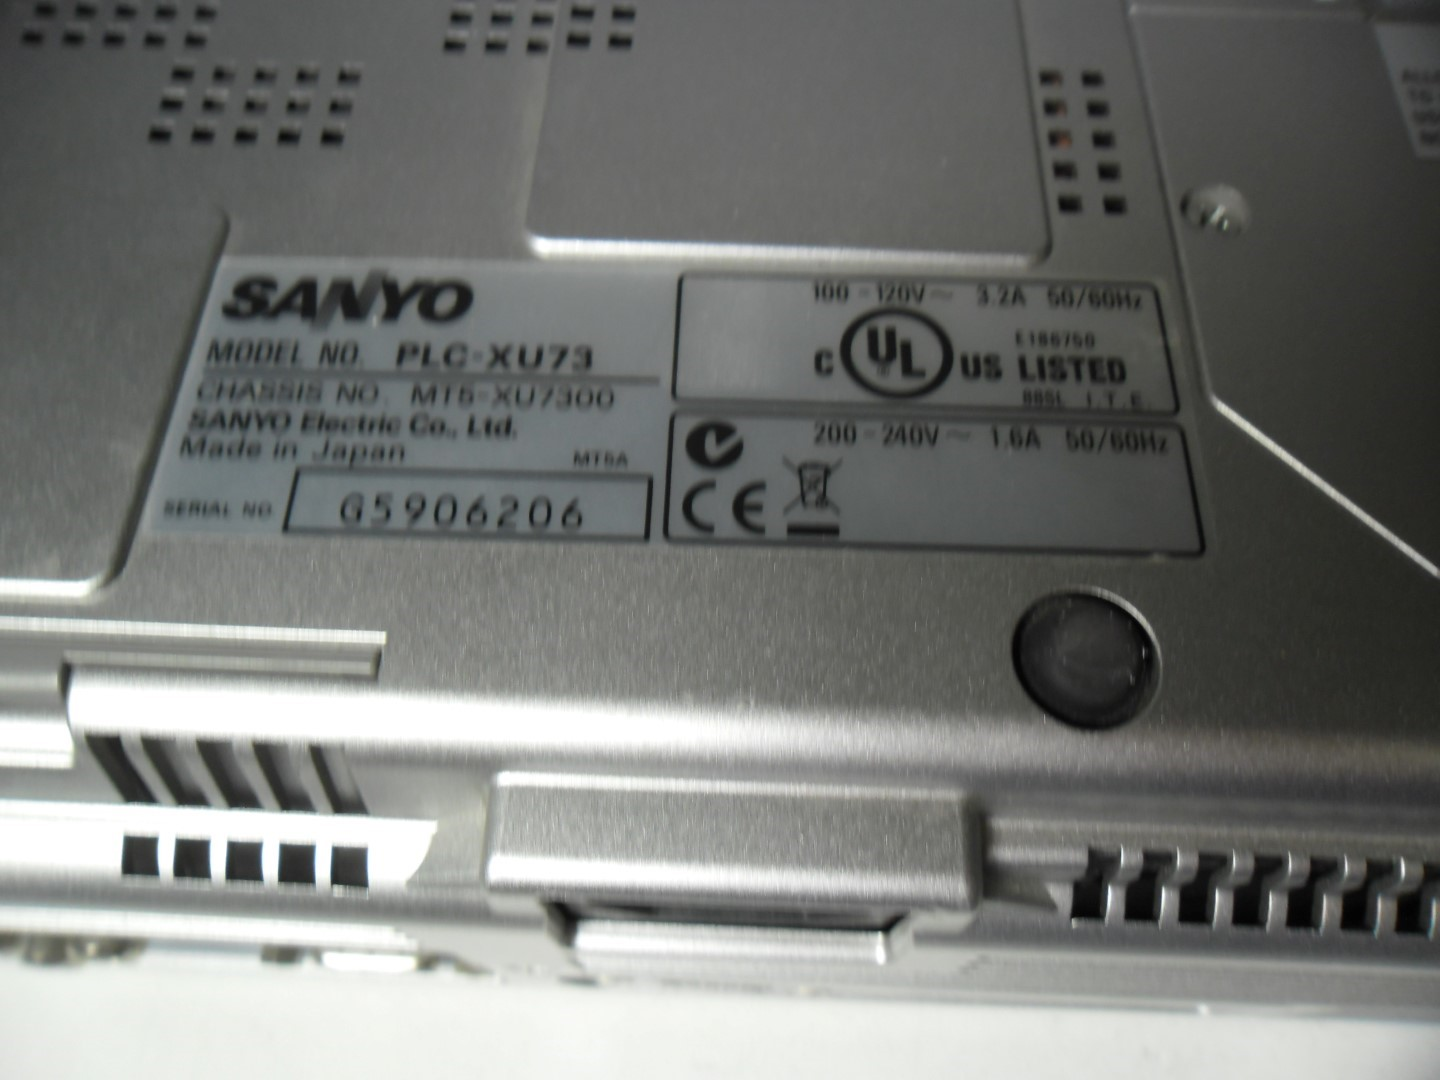 sanyo plc xu73 pro xtrax multiverse lcd projector powers on parts repair ebay. Black Bedroom Furniture Sets. Home Design Ideas